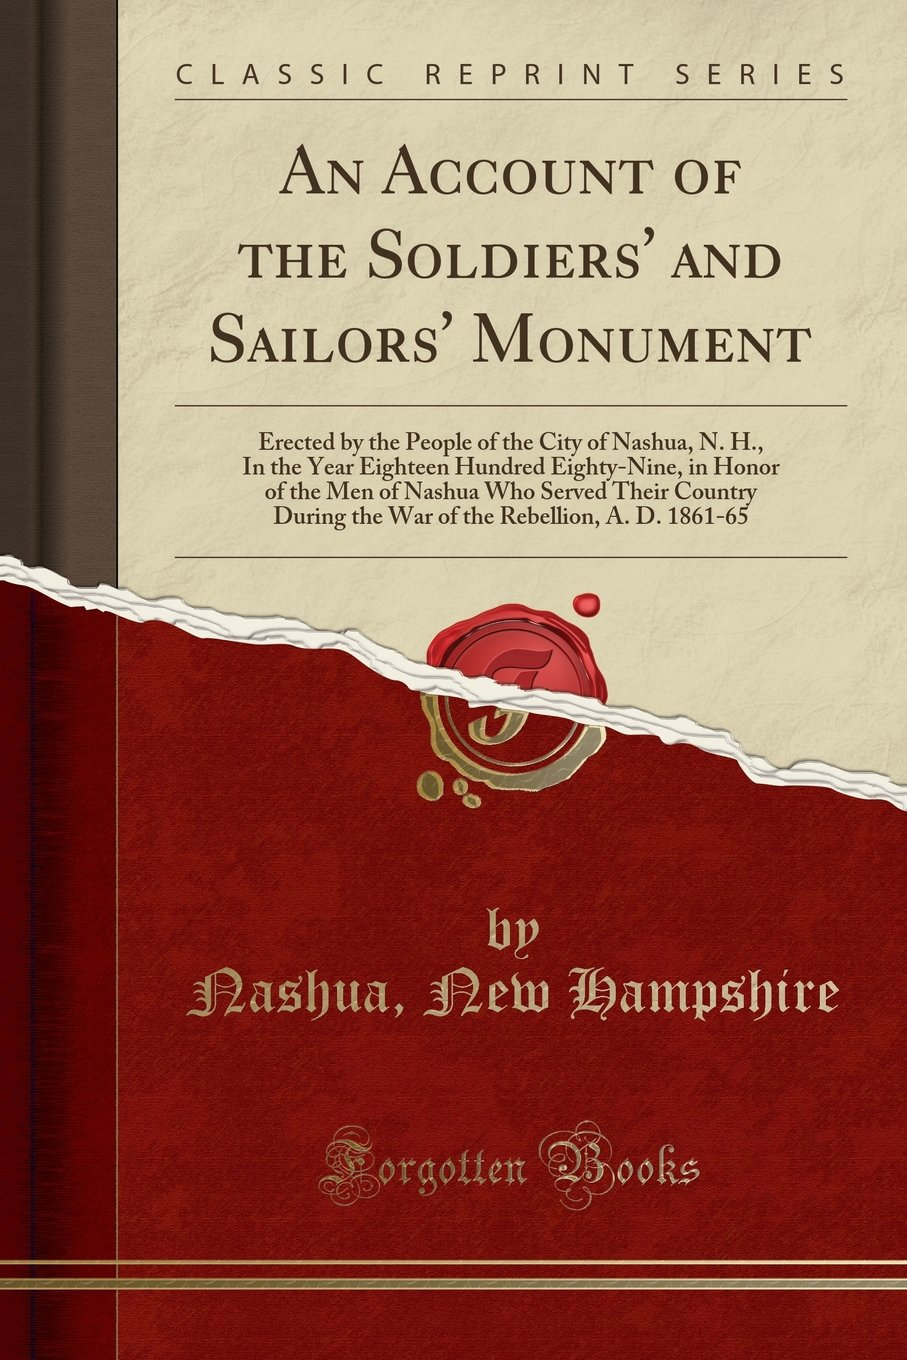 Download An Account of the Soldiers' and Sailors' Monument: Erected by the People of the City of Nashua, N. H., In the Year Eighteen Hundred Eighty-Nine, in ... the War of the Rebellion, A. D. 1861-65 ebook